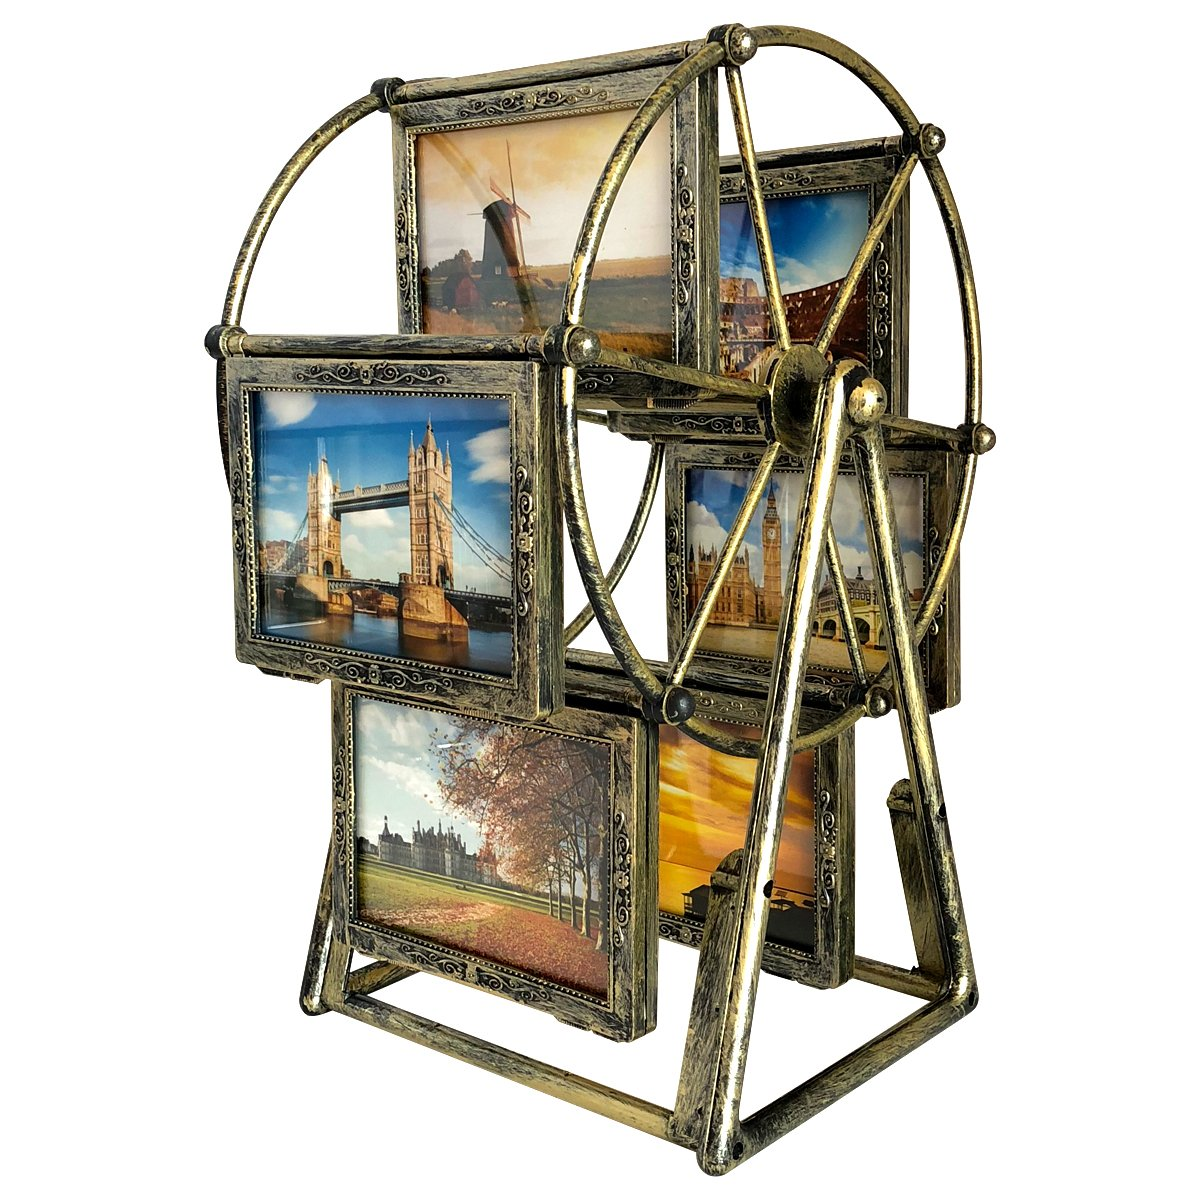 XBEEK Rotating Ferris Wheel Photo Frame, 12 Photos Shows For 3.5x5in Photographs, Vintage Retro Picture Frame, Multiple Picture Frames With Glass Front, Fit for Stands Vertically on Desk Table Top by XBEEK (Image #1)